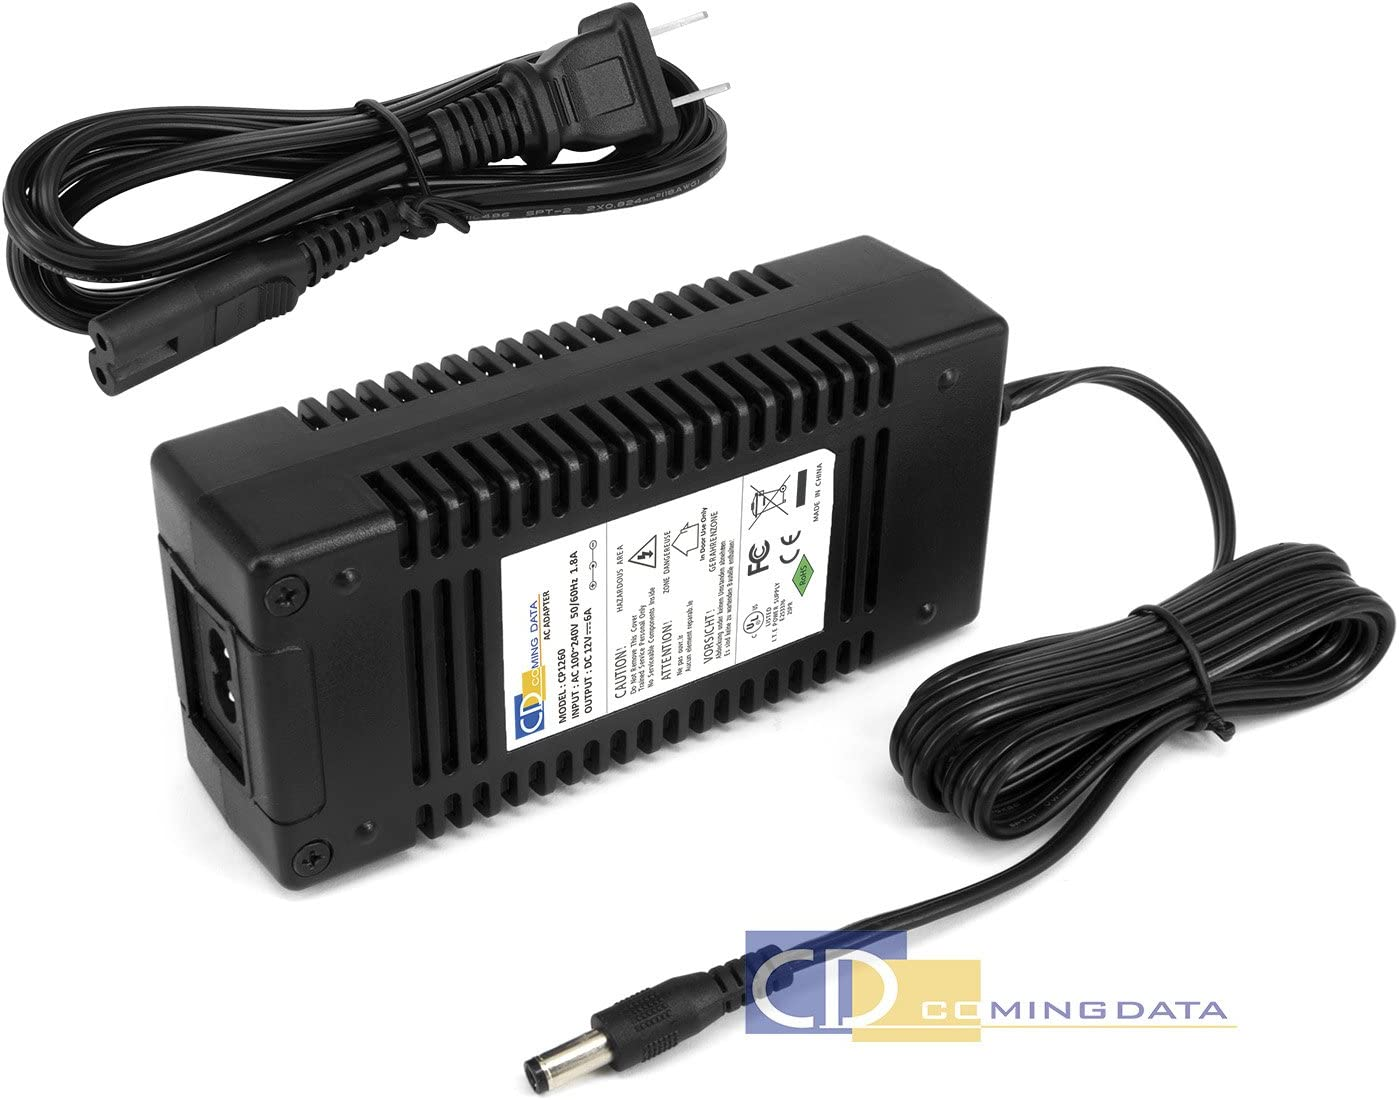 Coming Data 12V 6A 72W AC/DC Adapter Power Supplyw/5.5x2.1/2.5mm DC Barrel Connector (UL Certified)